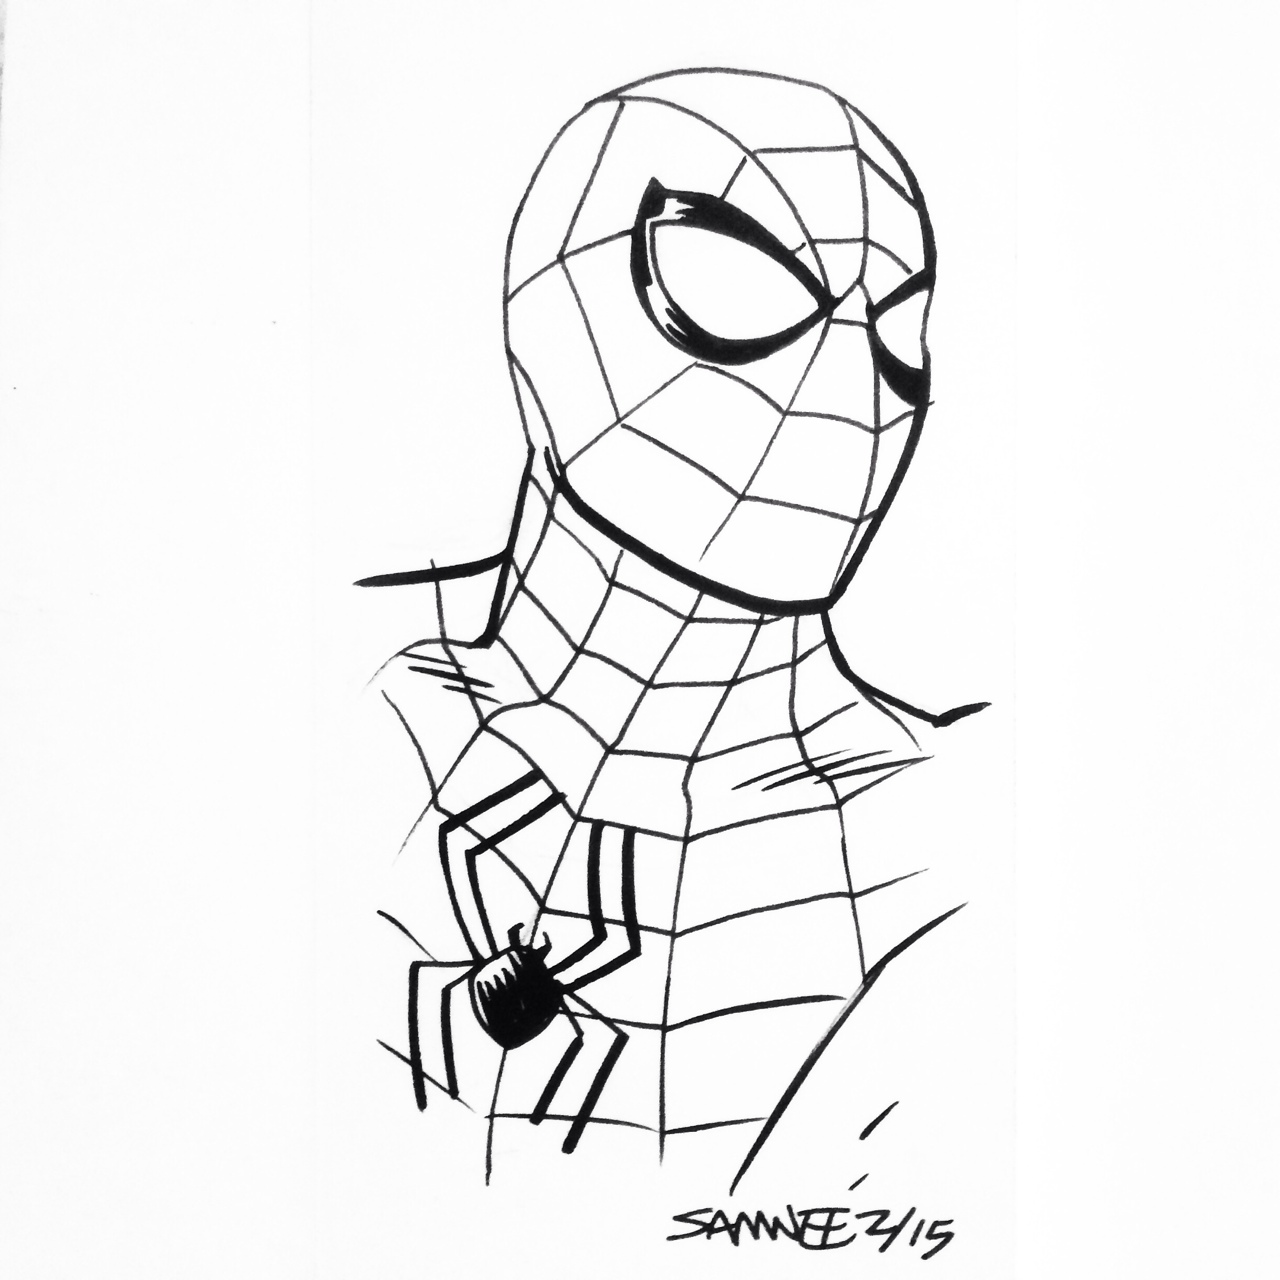 spiderman outline drawing spiderman line drawing free download on clipartmag spiderman drawing outline